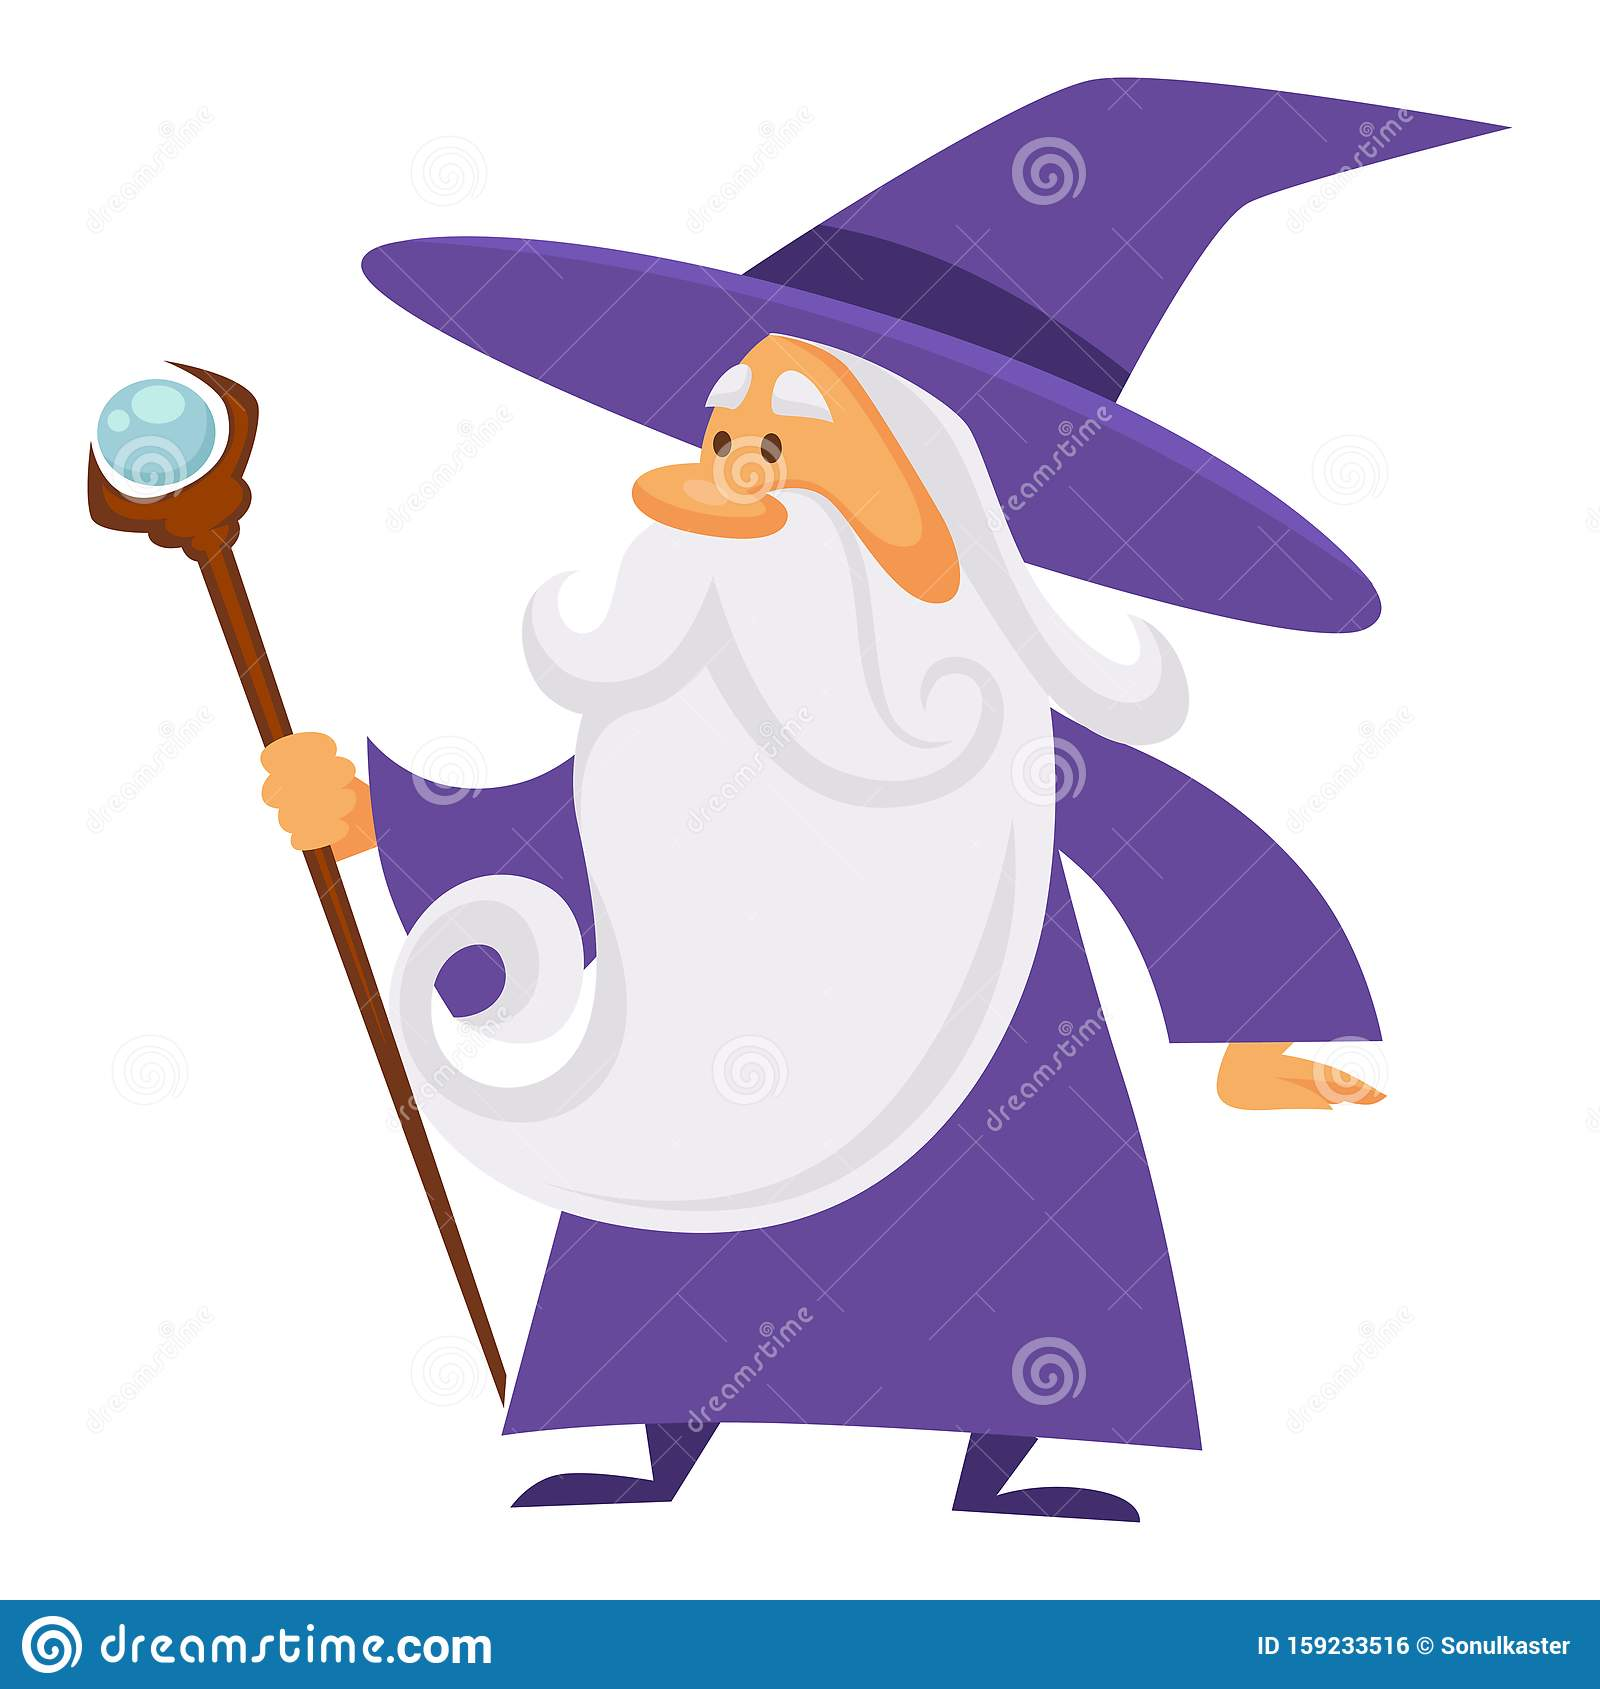 Magician And Wizard With Scepter Warlock Man In Robe Isolated Character Stock Vector Illustration Of Scepter Fantasy 159233516